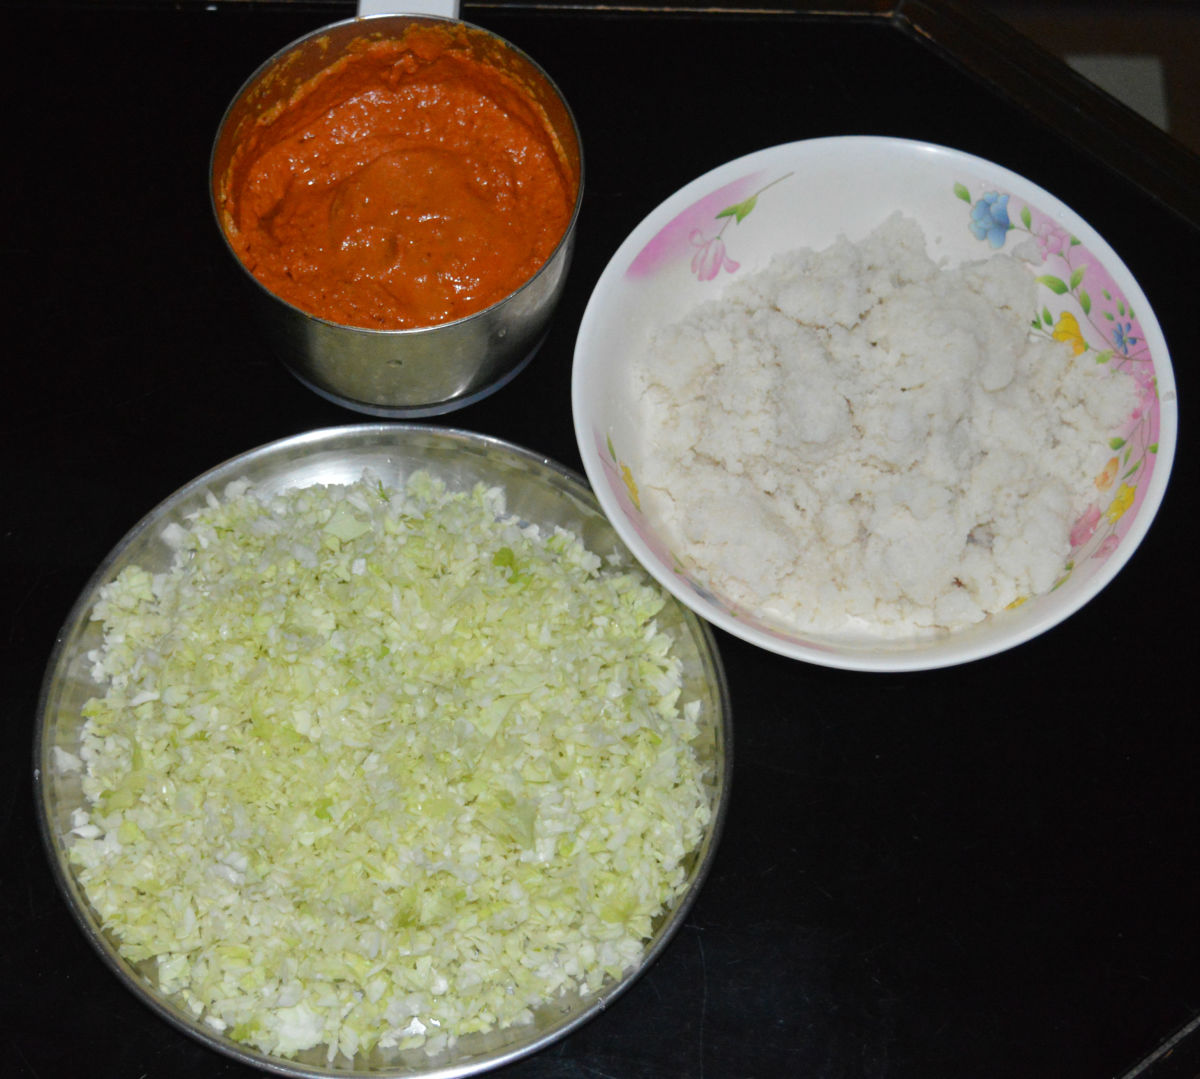 Step 3: Add the finely chopped cabbage, washed rice semolina, and salt to the bowl containing the paste.